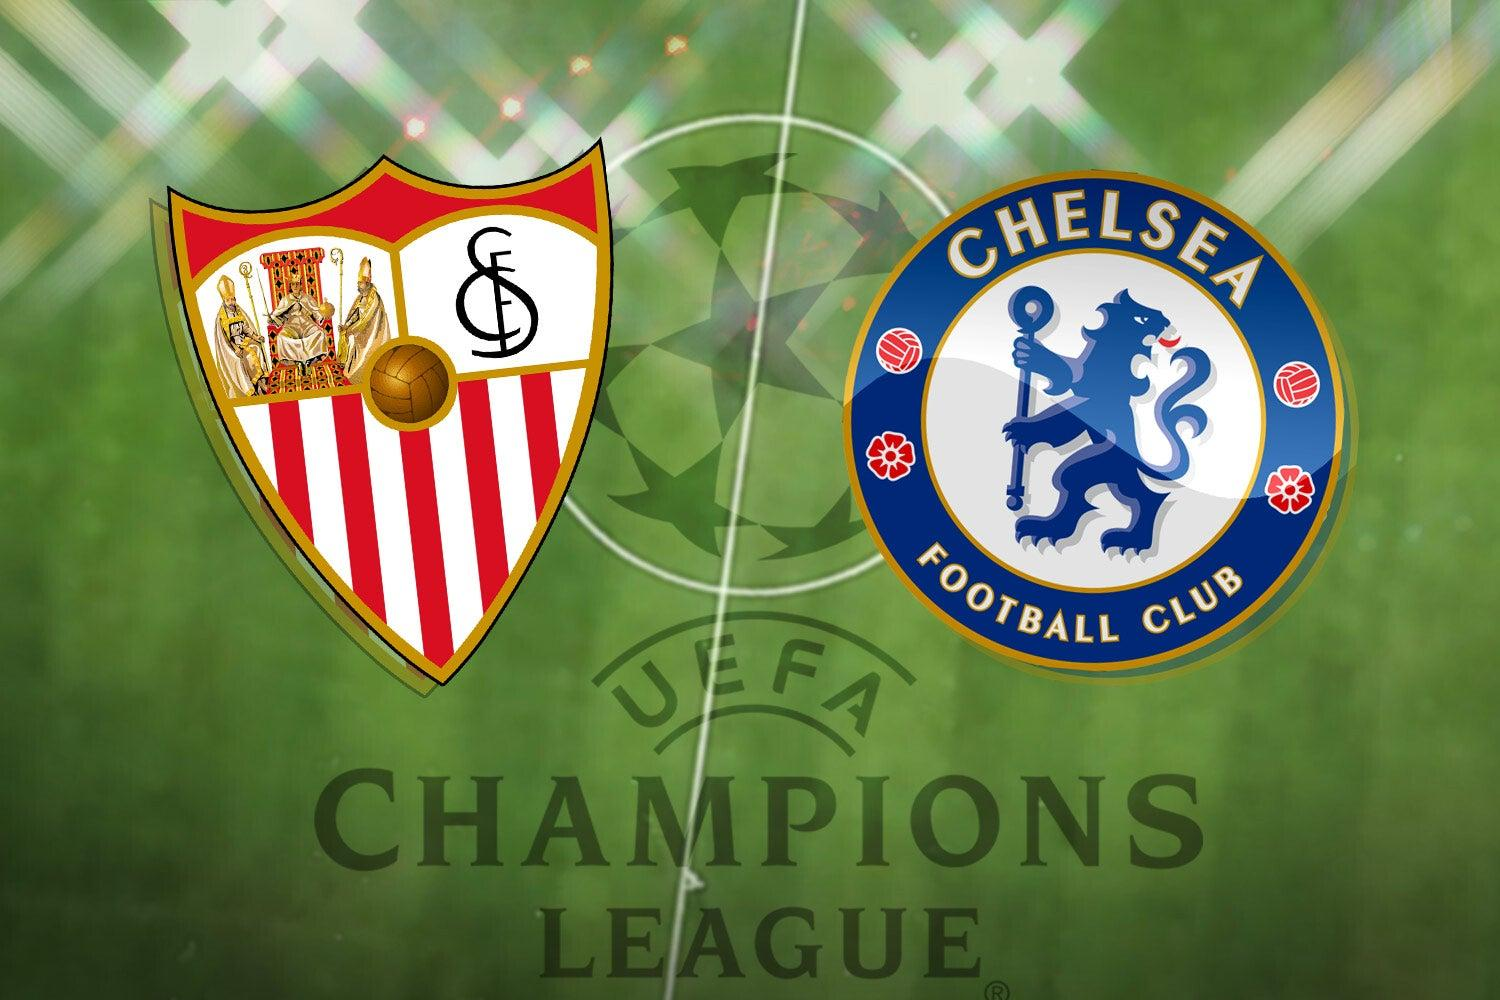 Sevilla vs Chelsea: Prediction, team news, lineup, h2h results, TV channel, live stream, odds - preview